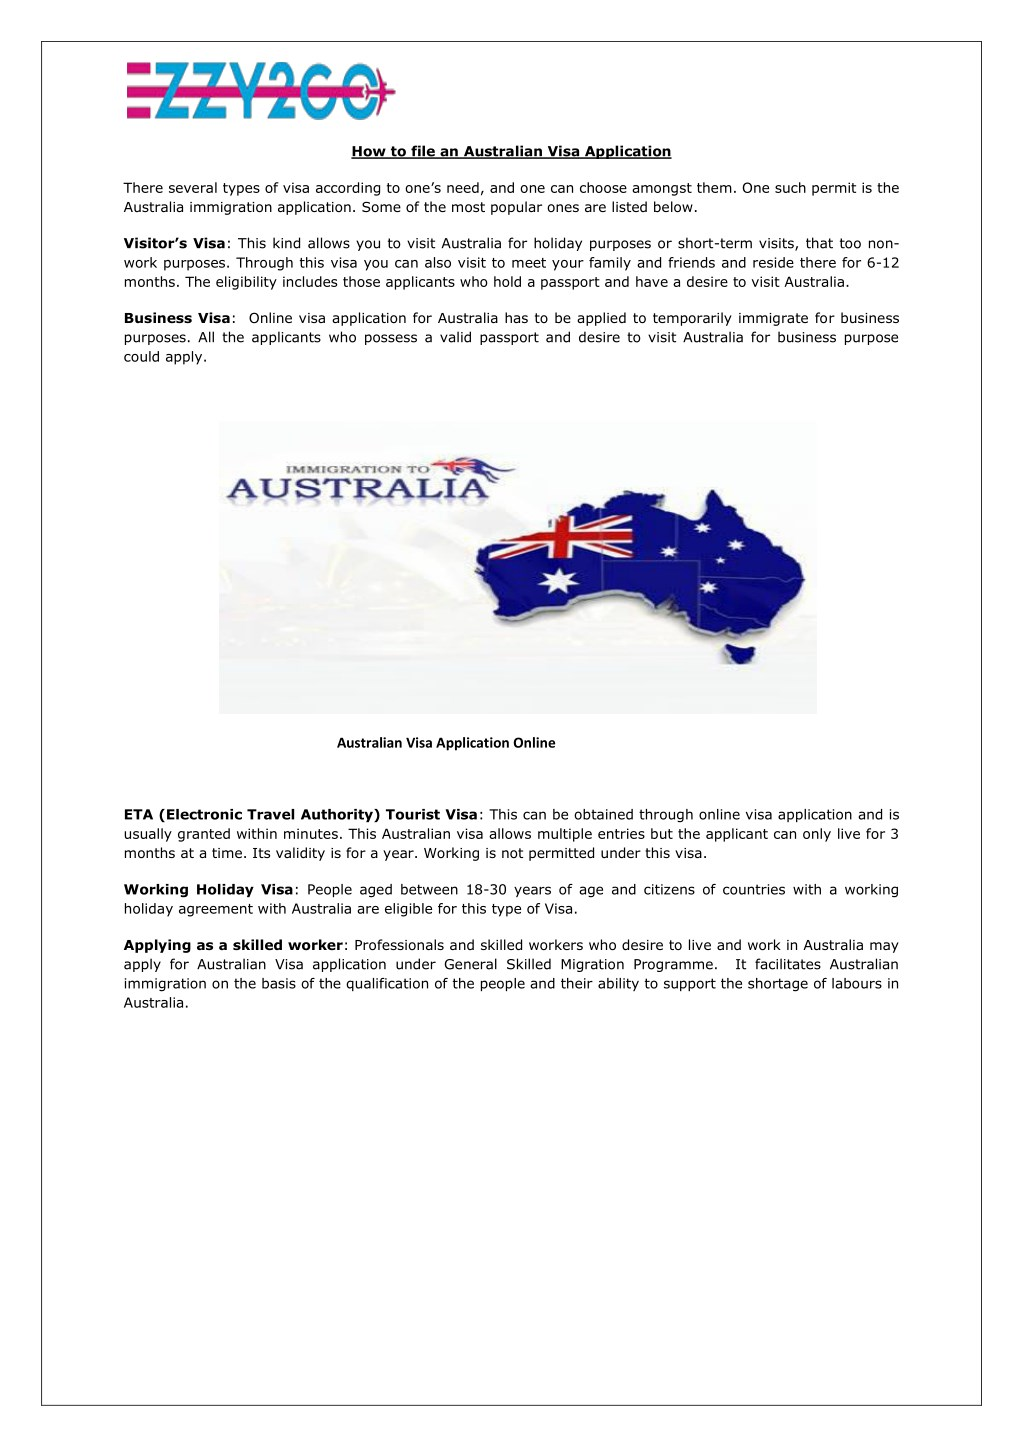 PPT - How to file an Australian Visa Application PowerPoint Presentation -  ID:7745307